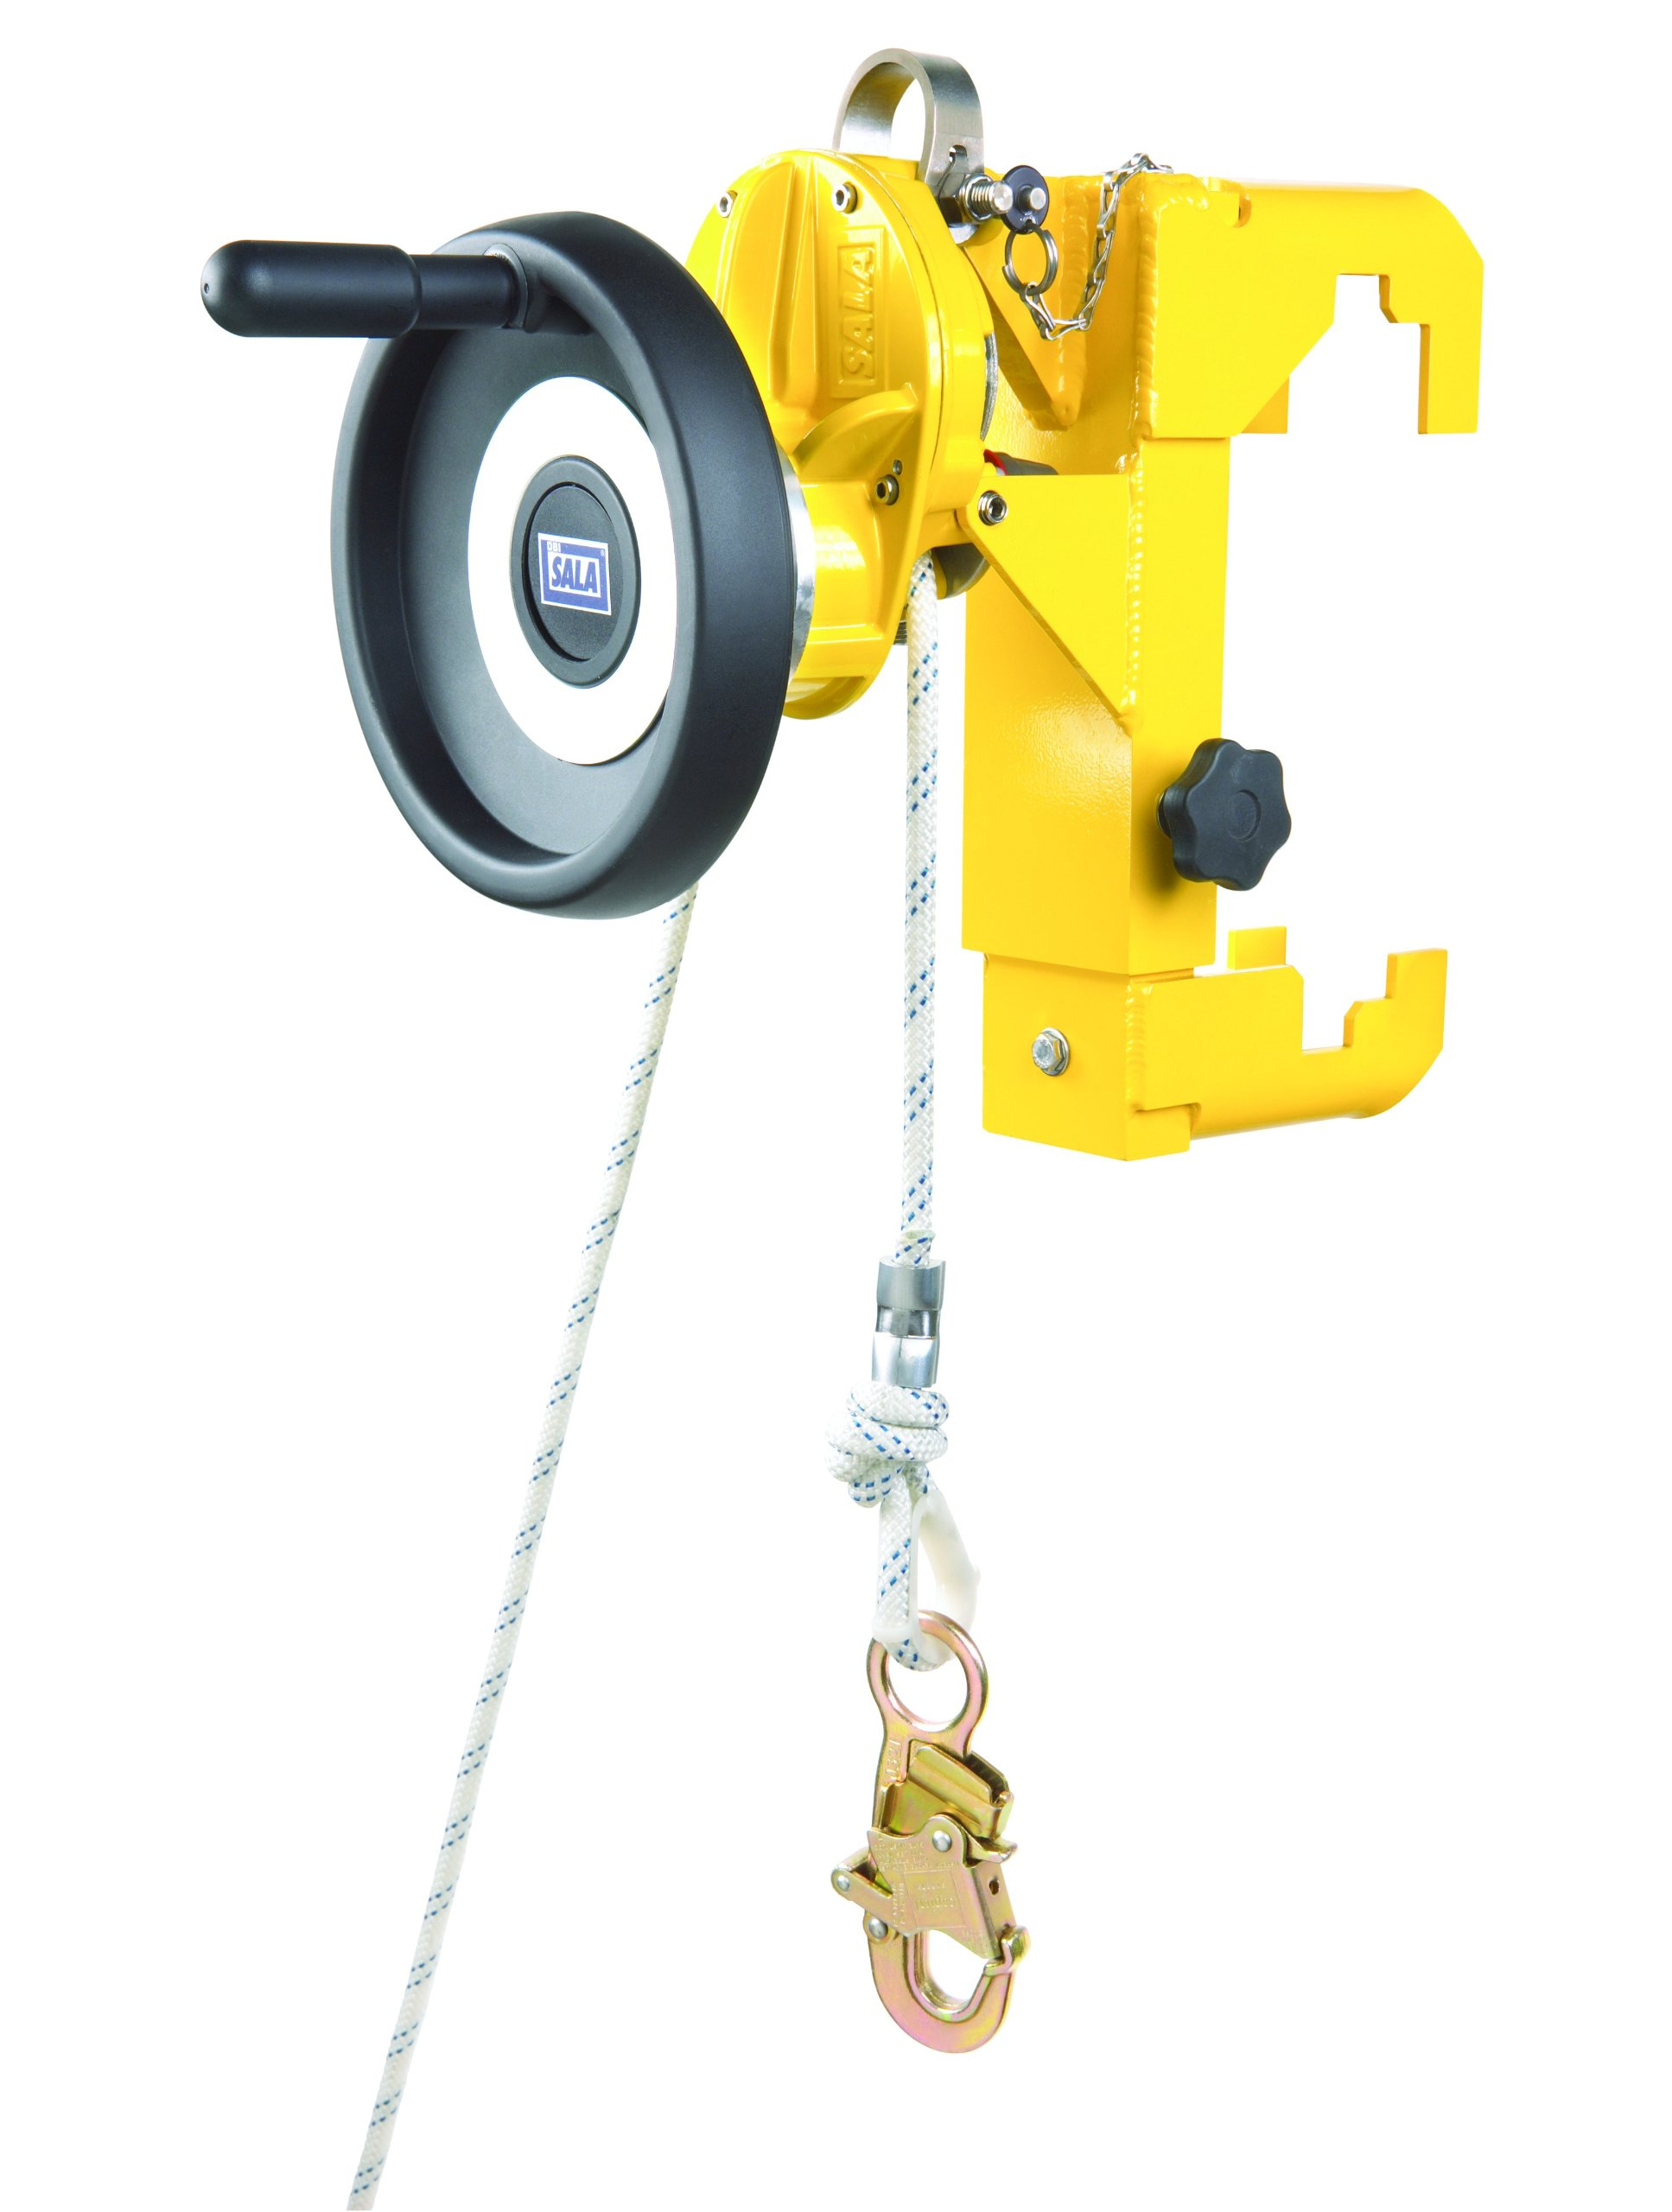 3M DBI-SALA Rollgliss R500 3320300 Rescue/Descent Kit, 300', W/Rescue Lifting Handle, Ladder Bracket, 3 Anchor Slings, 4 Carabiner, Pulley, Edge Protector, Rope Grab, Bag, Yellow